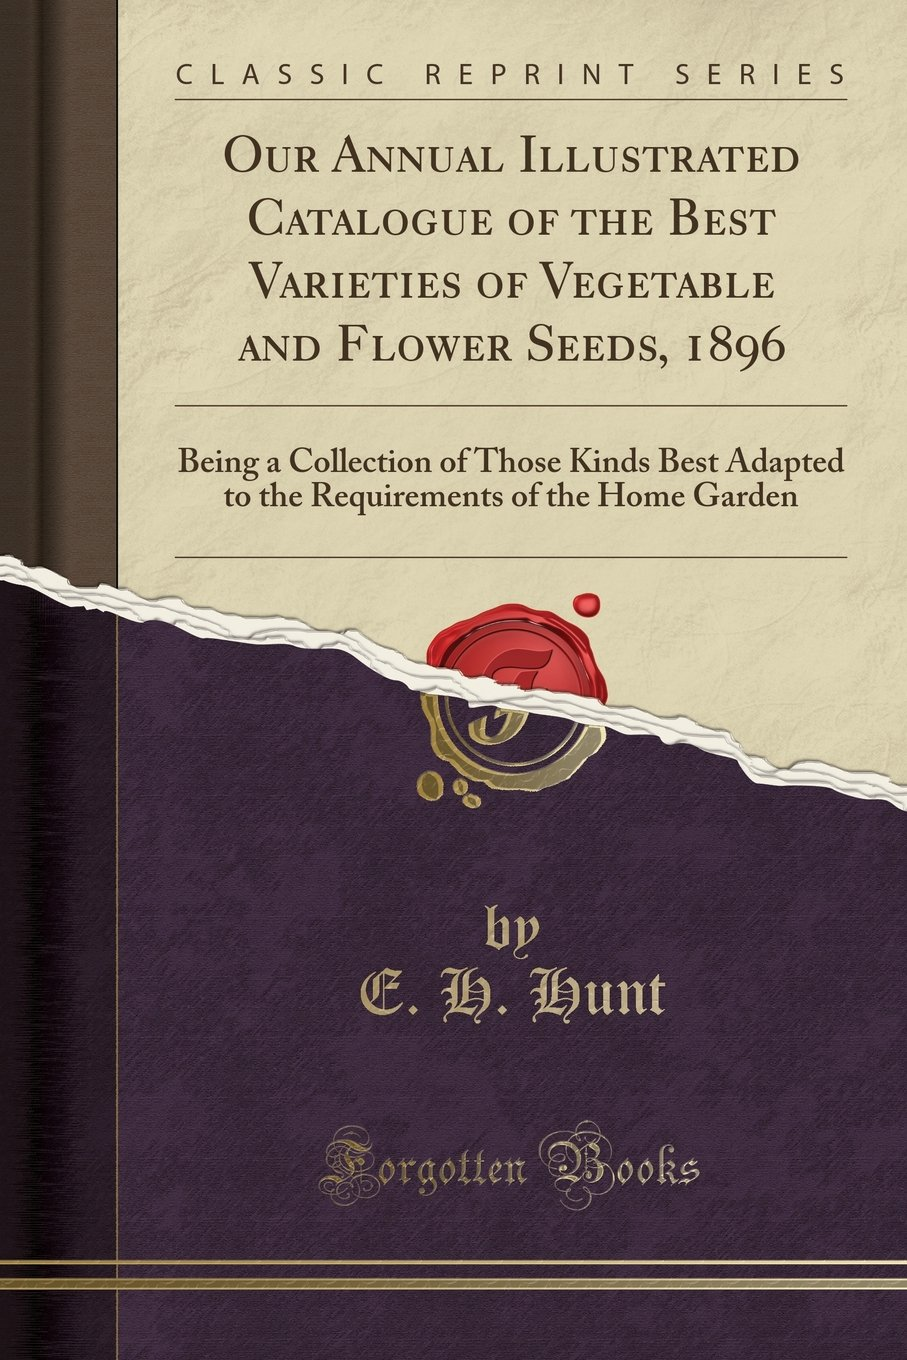 Download Our Annual Illustrated Catalogue of the Best Varieties of Vegetable and Flower Seeds, 1896: Being a Collection of Those Kinds Best Adapted to the Requirements of the Home Garden (Classic Reprint) pdf